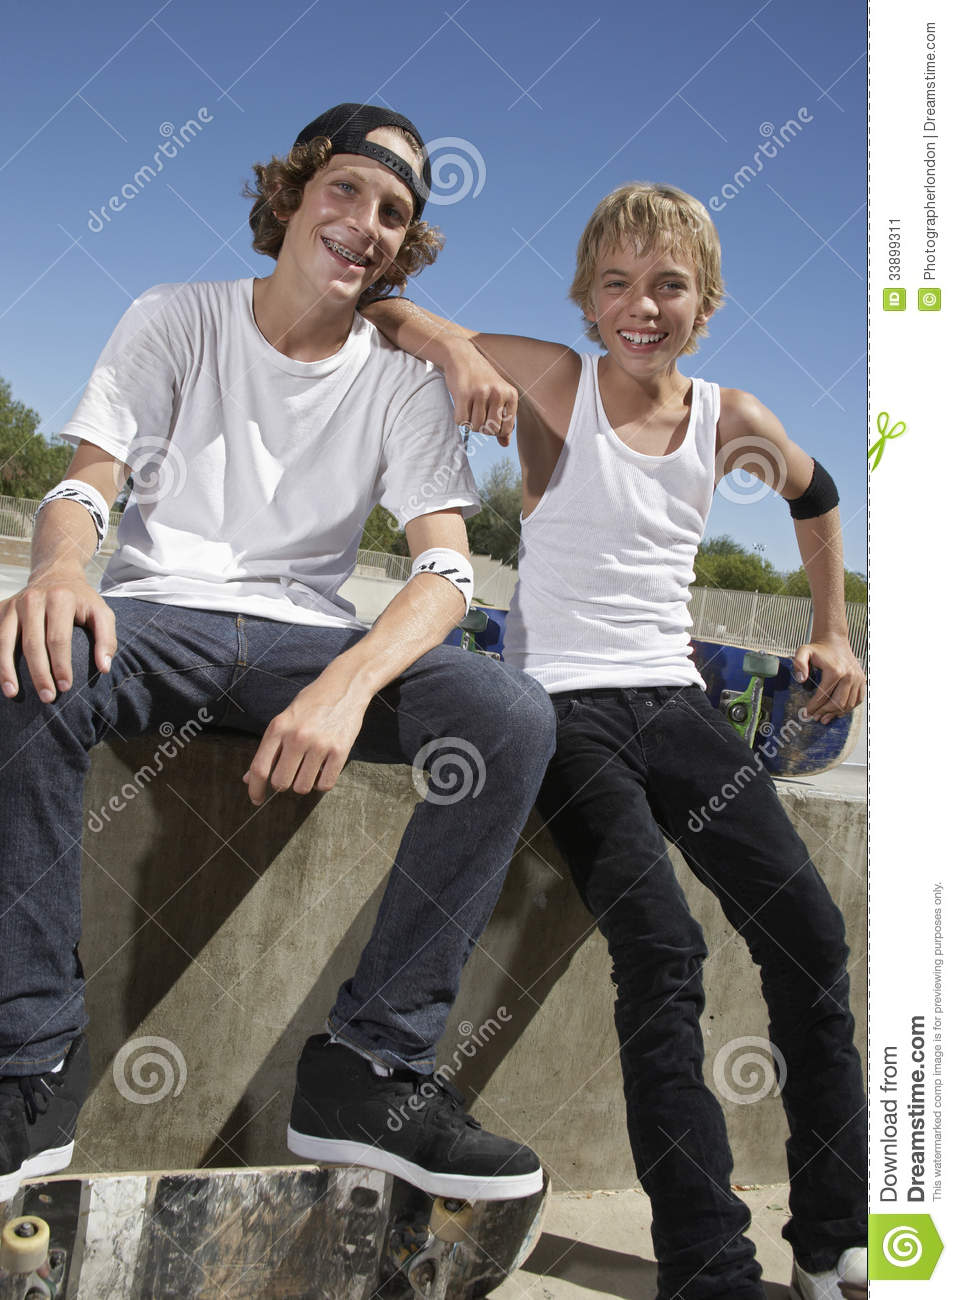 Happy Boys With Skateboard In Skate Park Stock Image